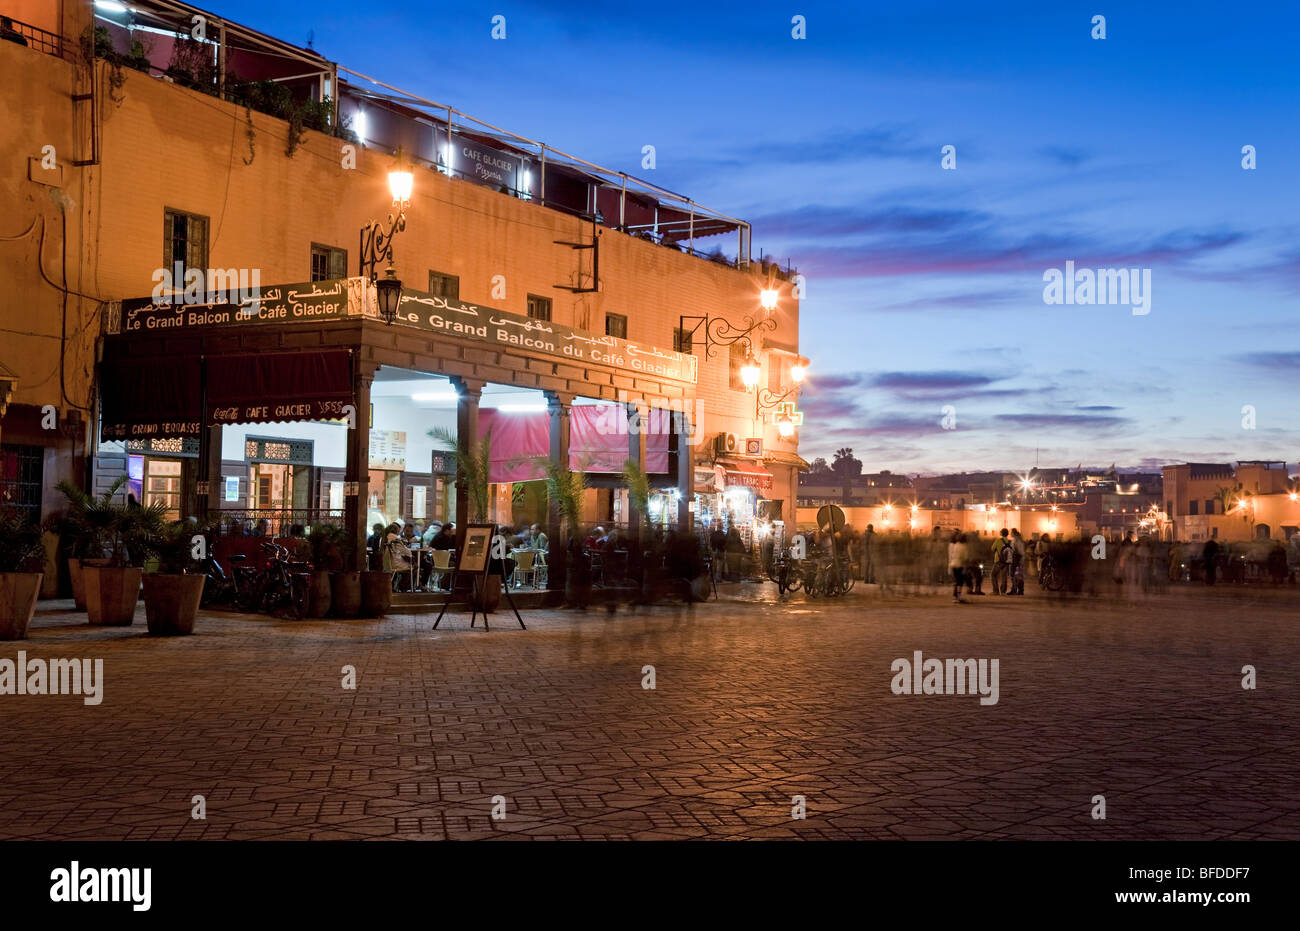 Morocco Marrakesh Place Jemaa El Fna At Dusk With Cafe Glacier